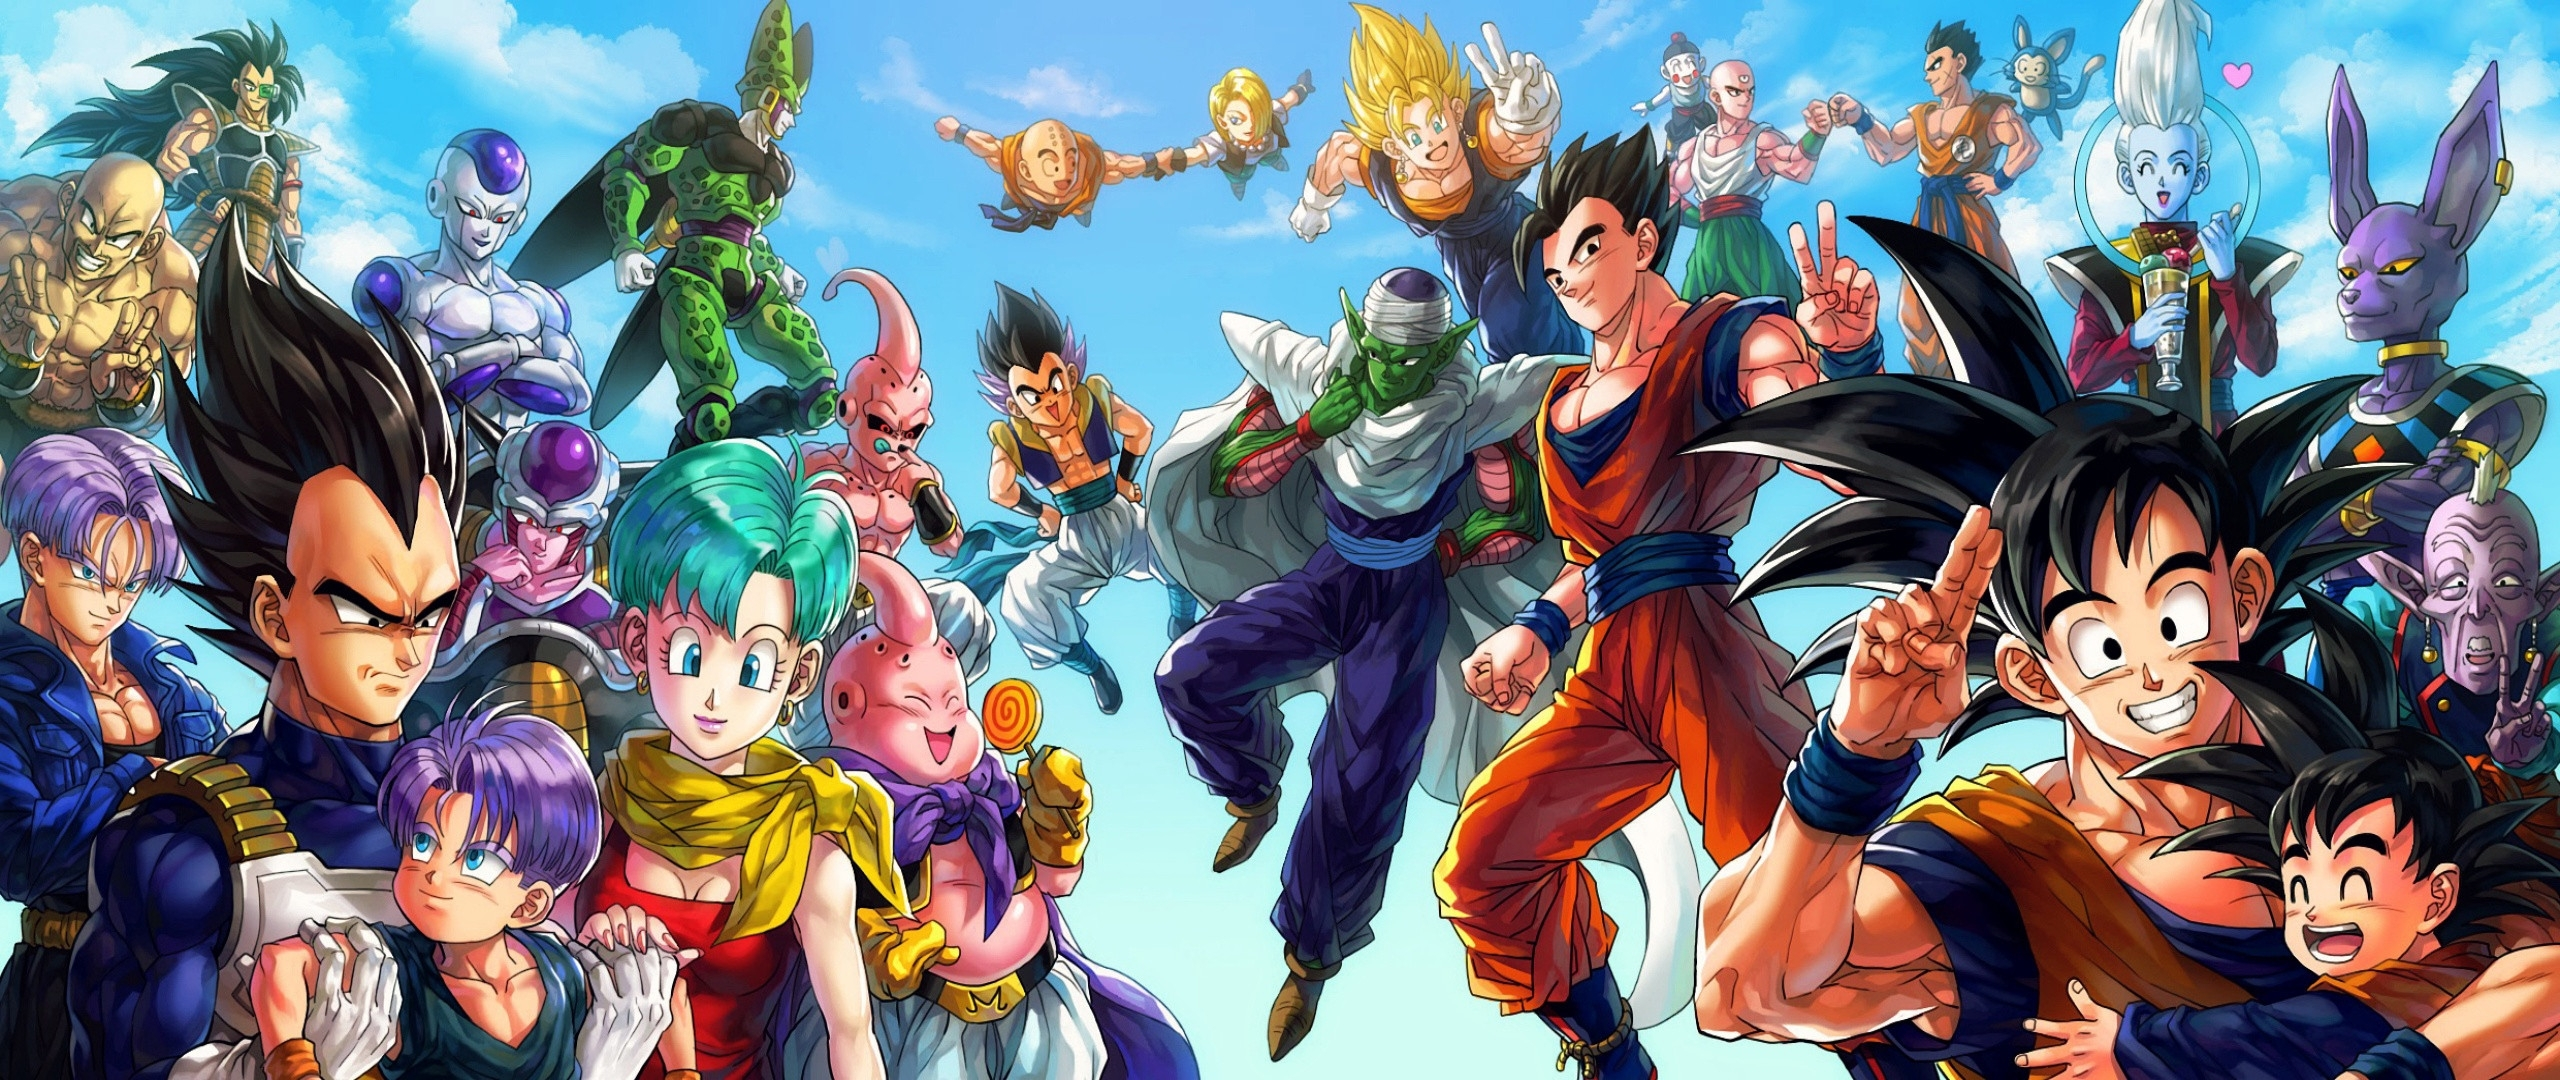 10 best dbz dual monitor wallpaper full hd 1920 1080 for - Images dragon ball z ...